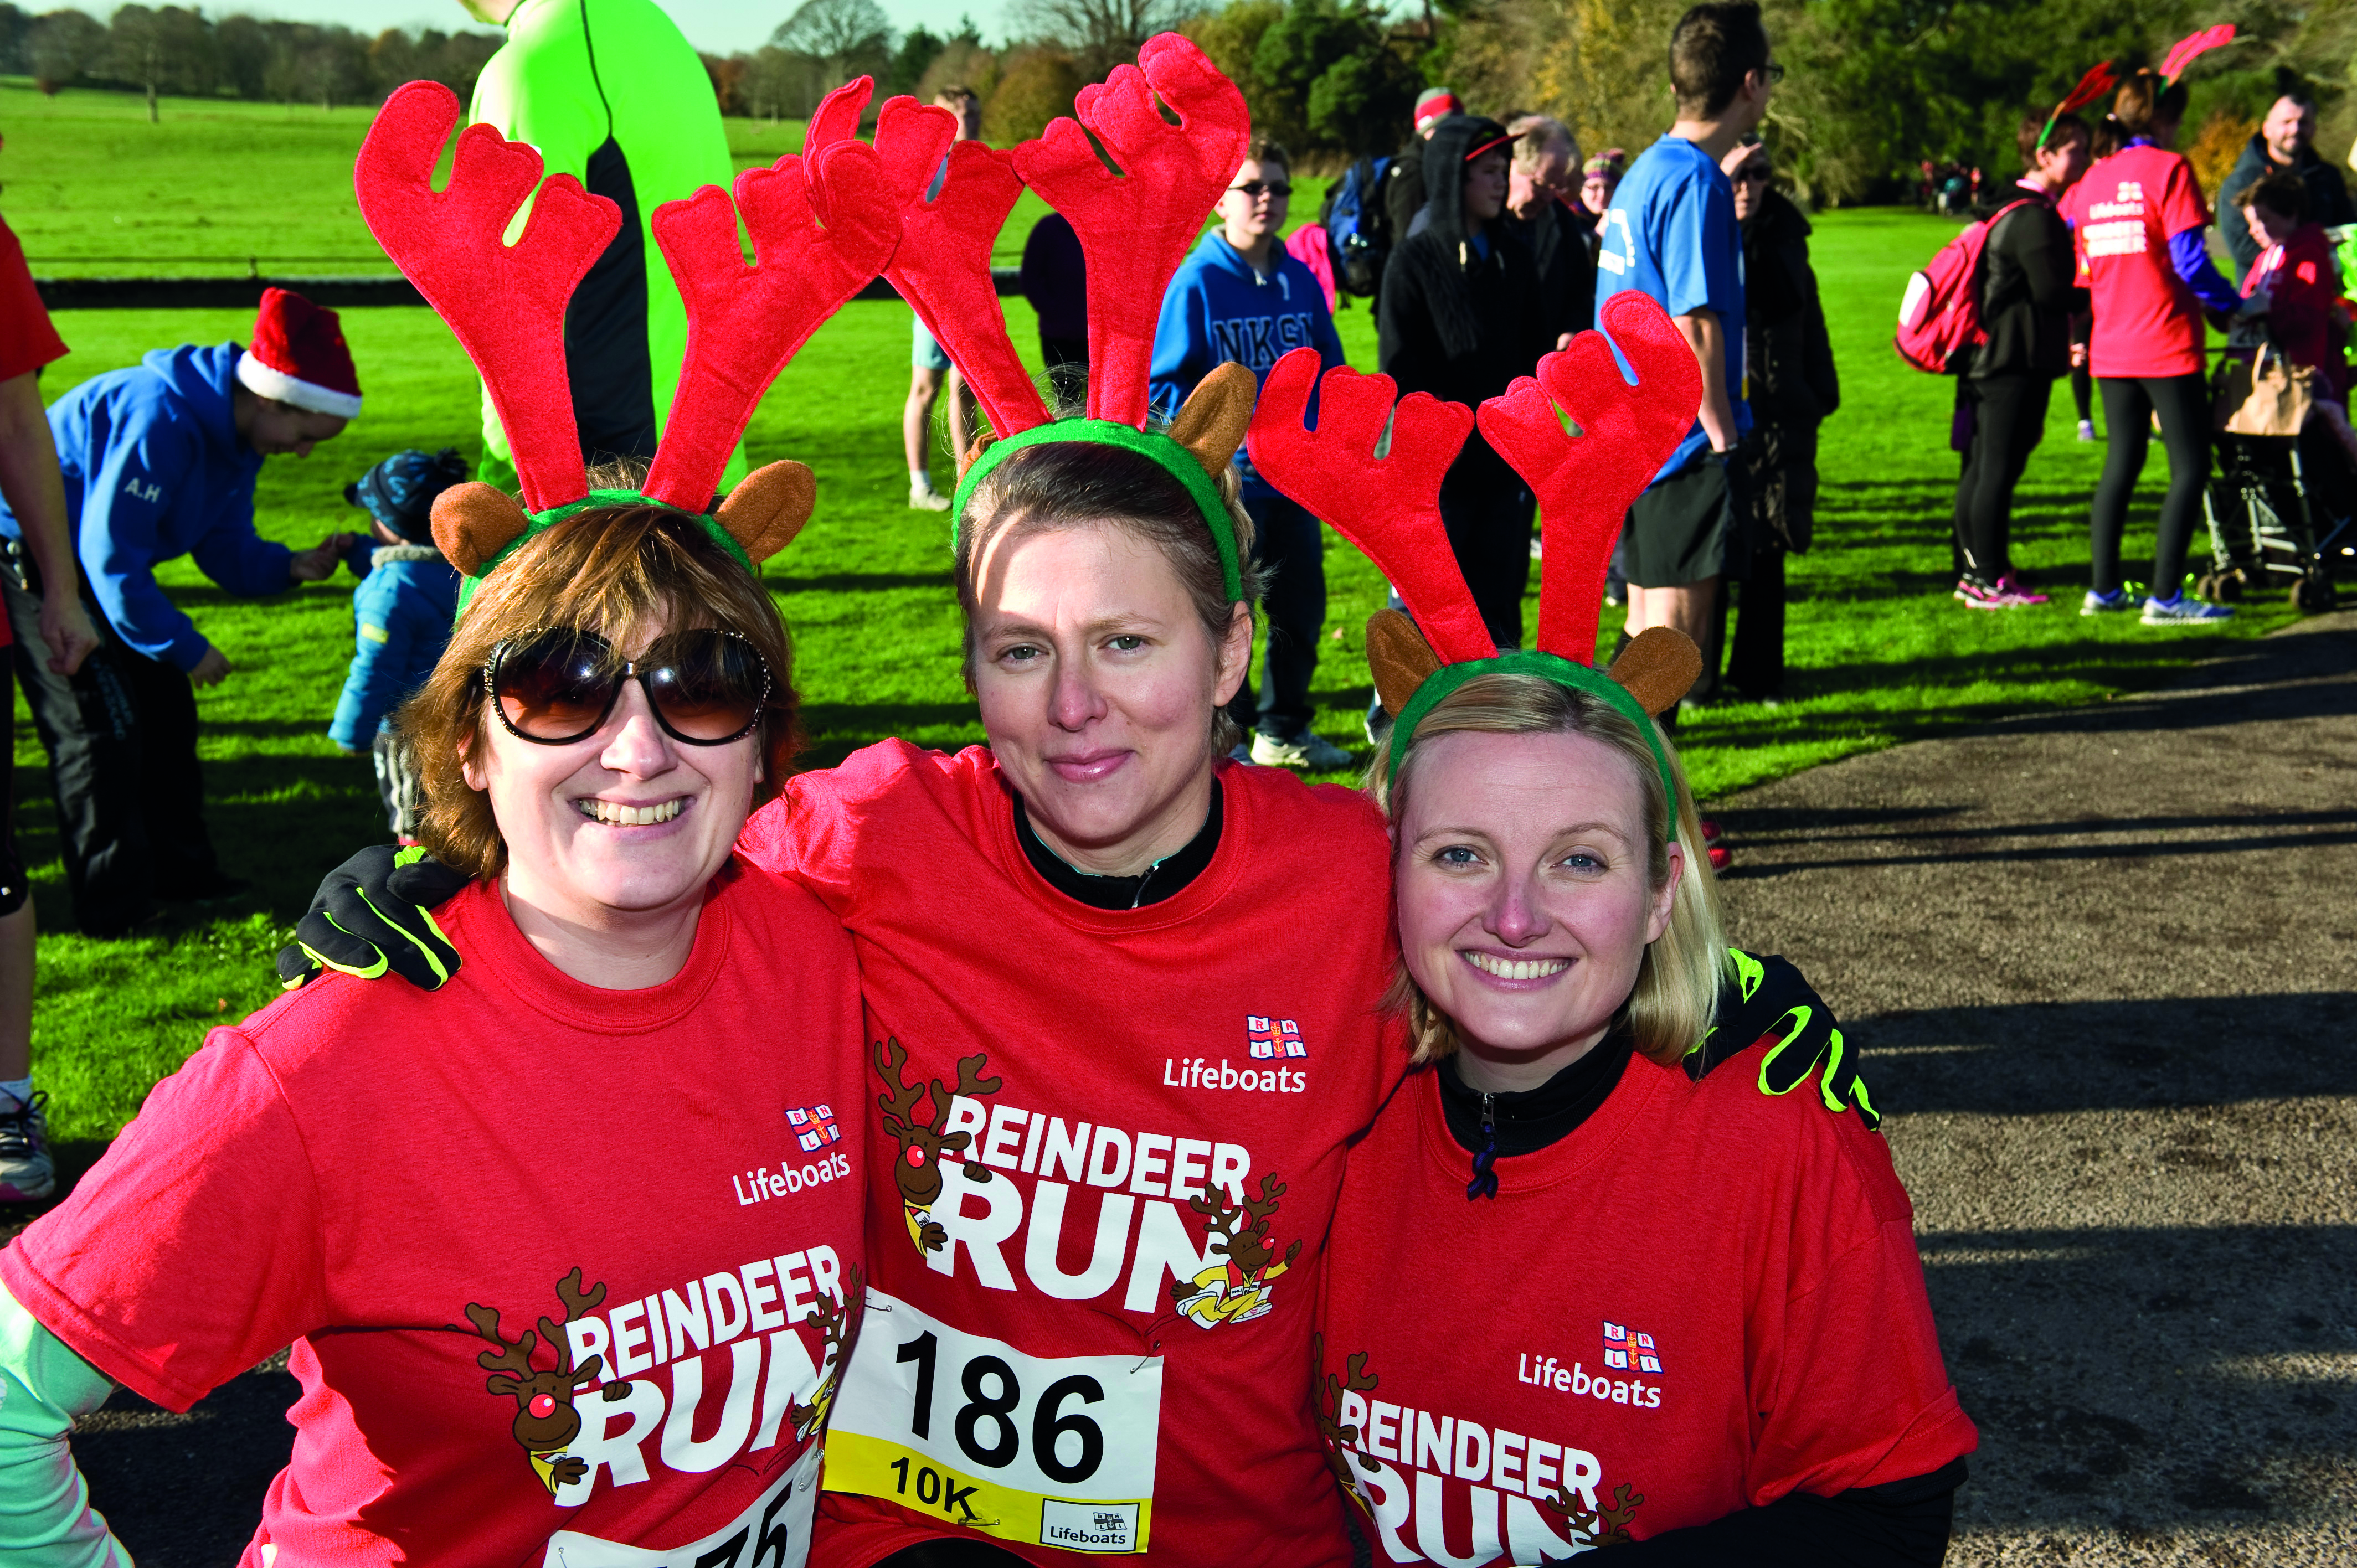 Photo of three participants in antlers from a previous Reindeer Run event.